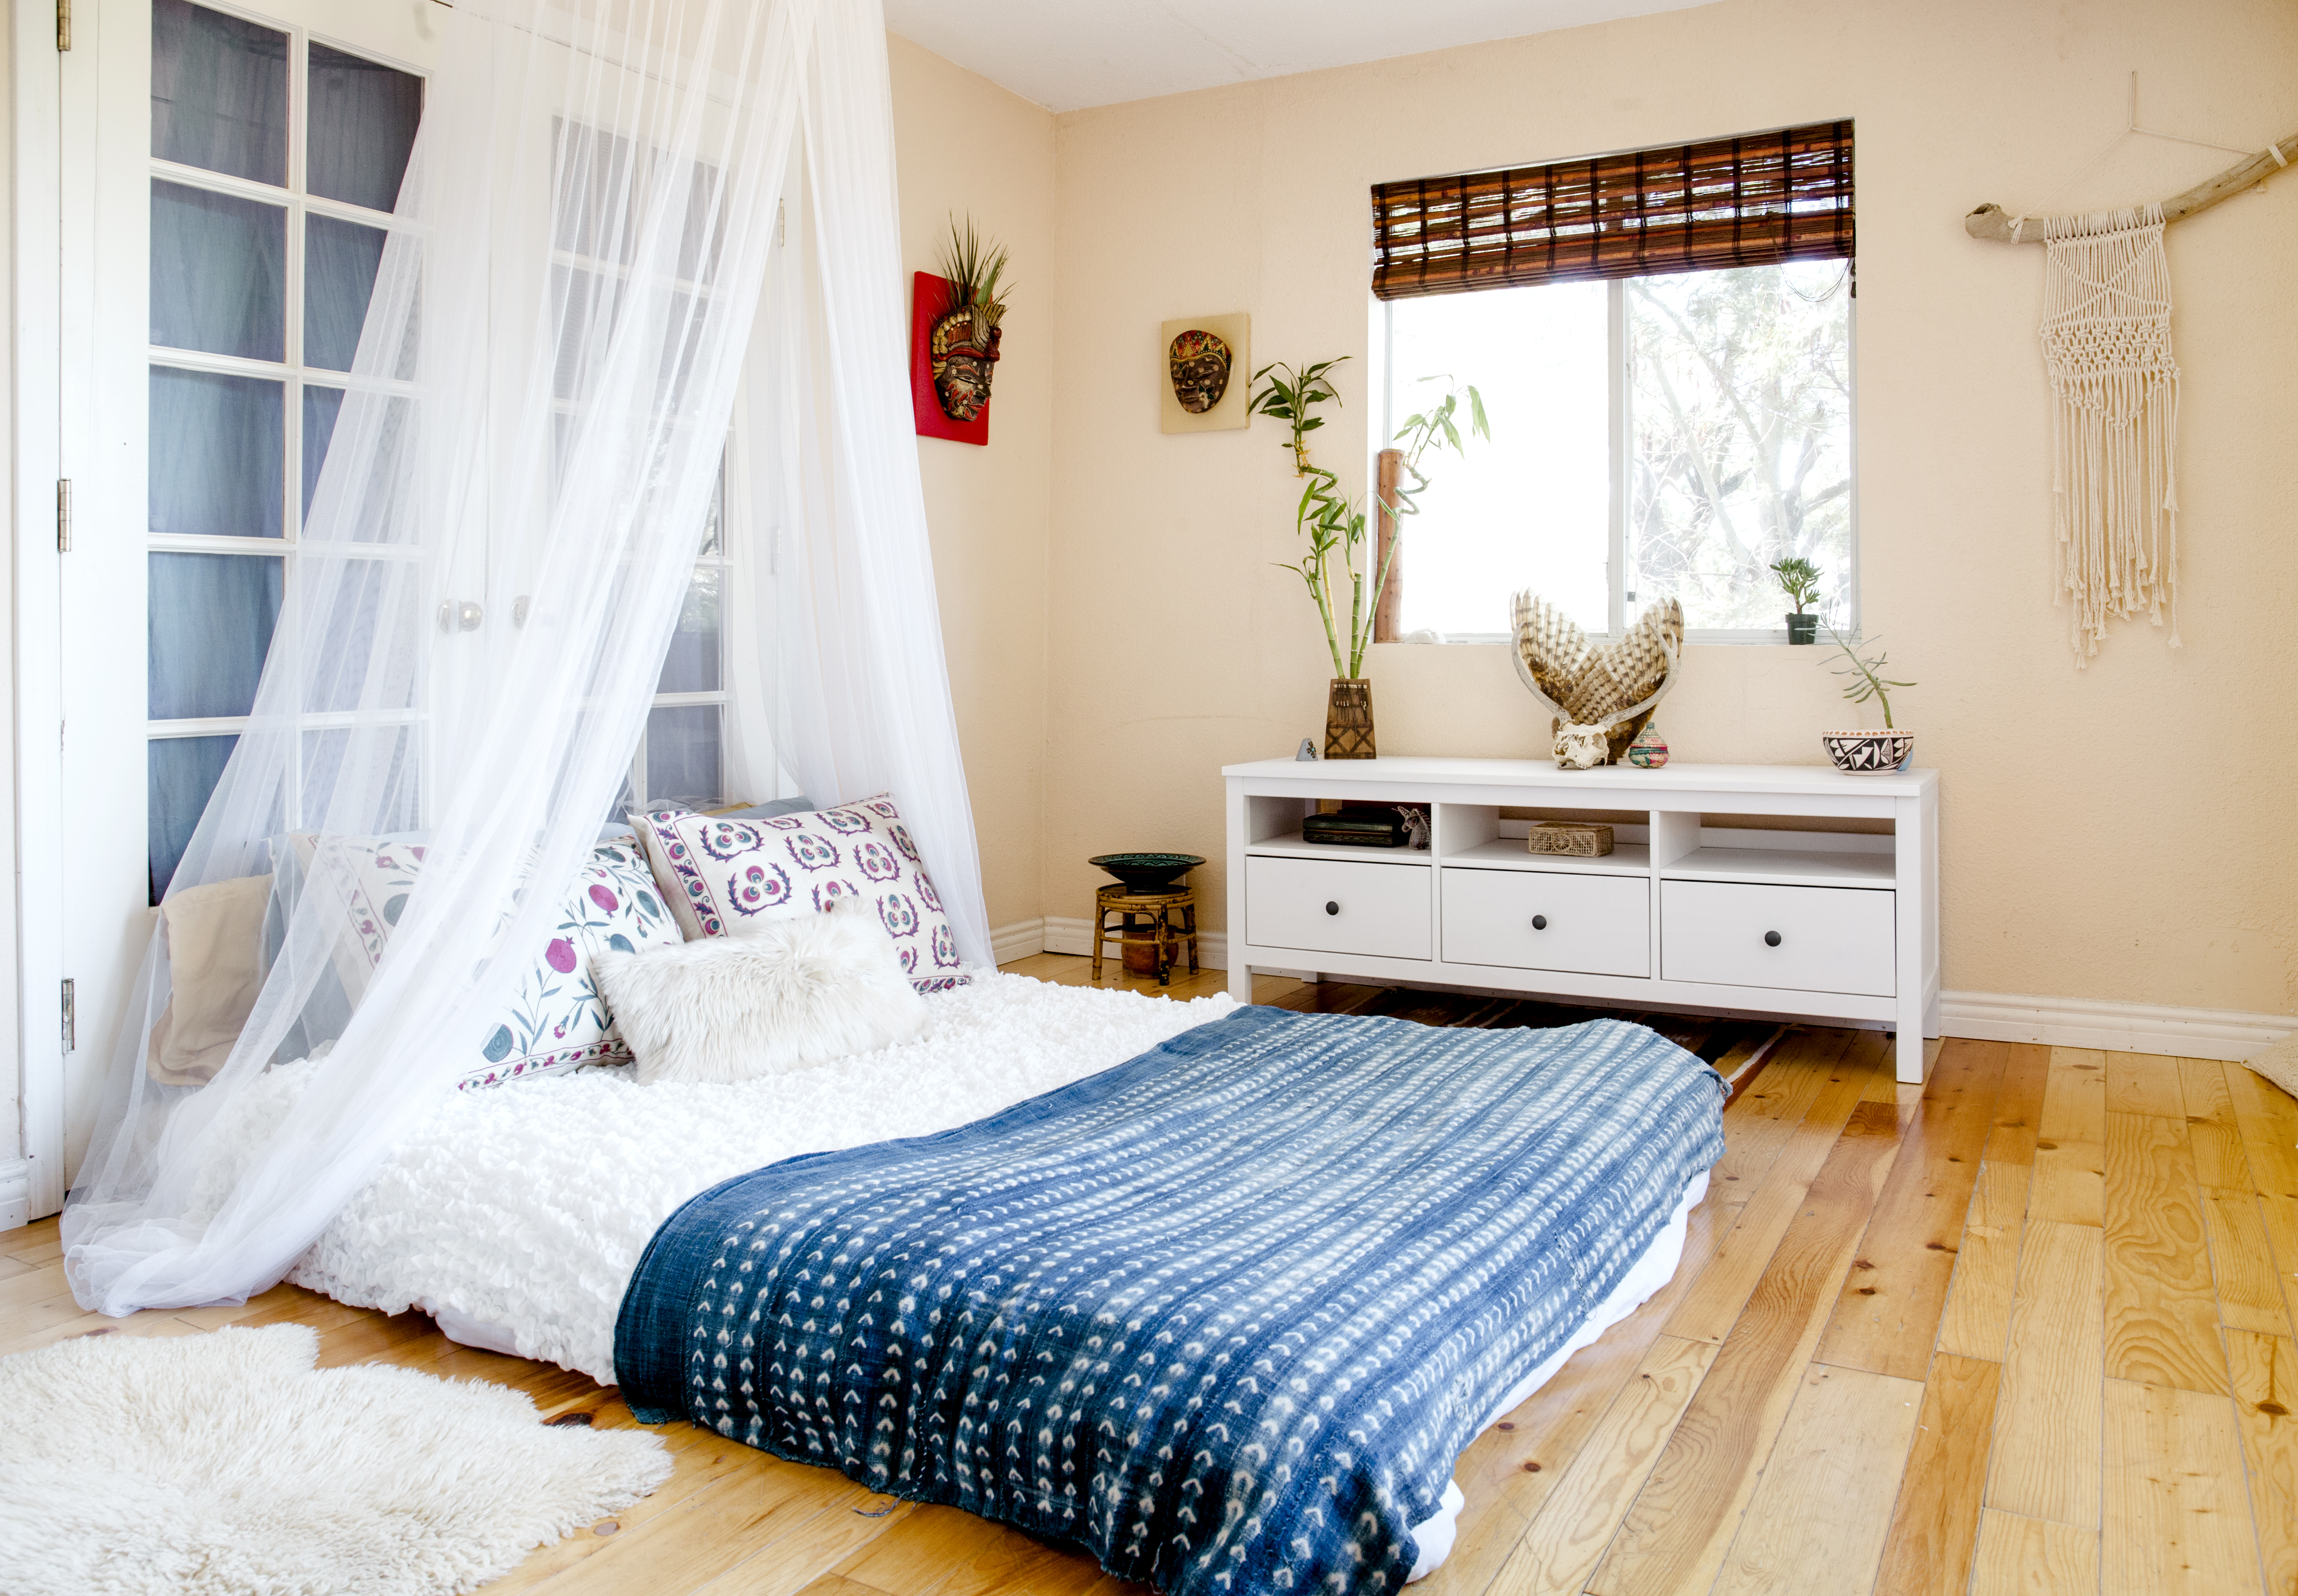 Oakland Bedroom Furniture An Oakland Musician Makes Her Home Sing Curbed